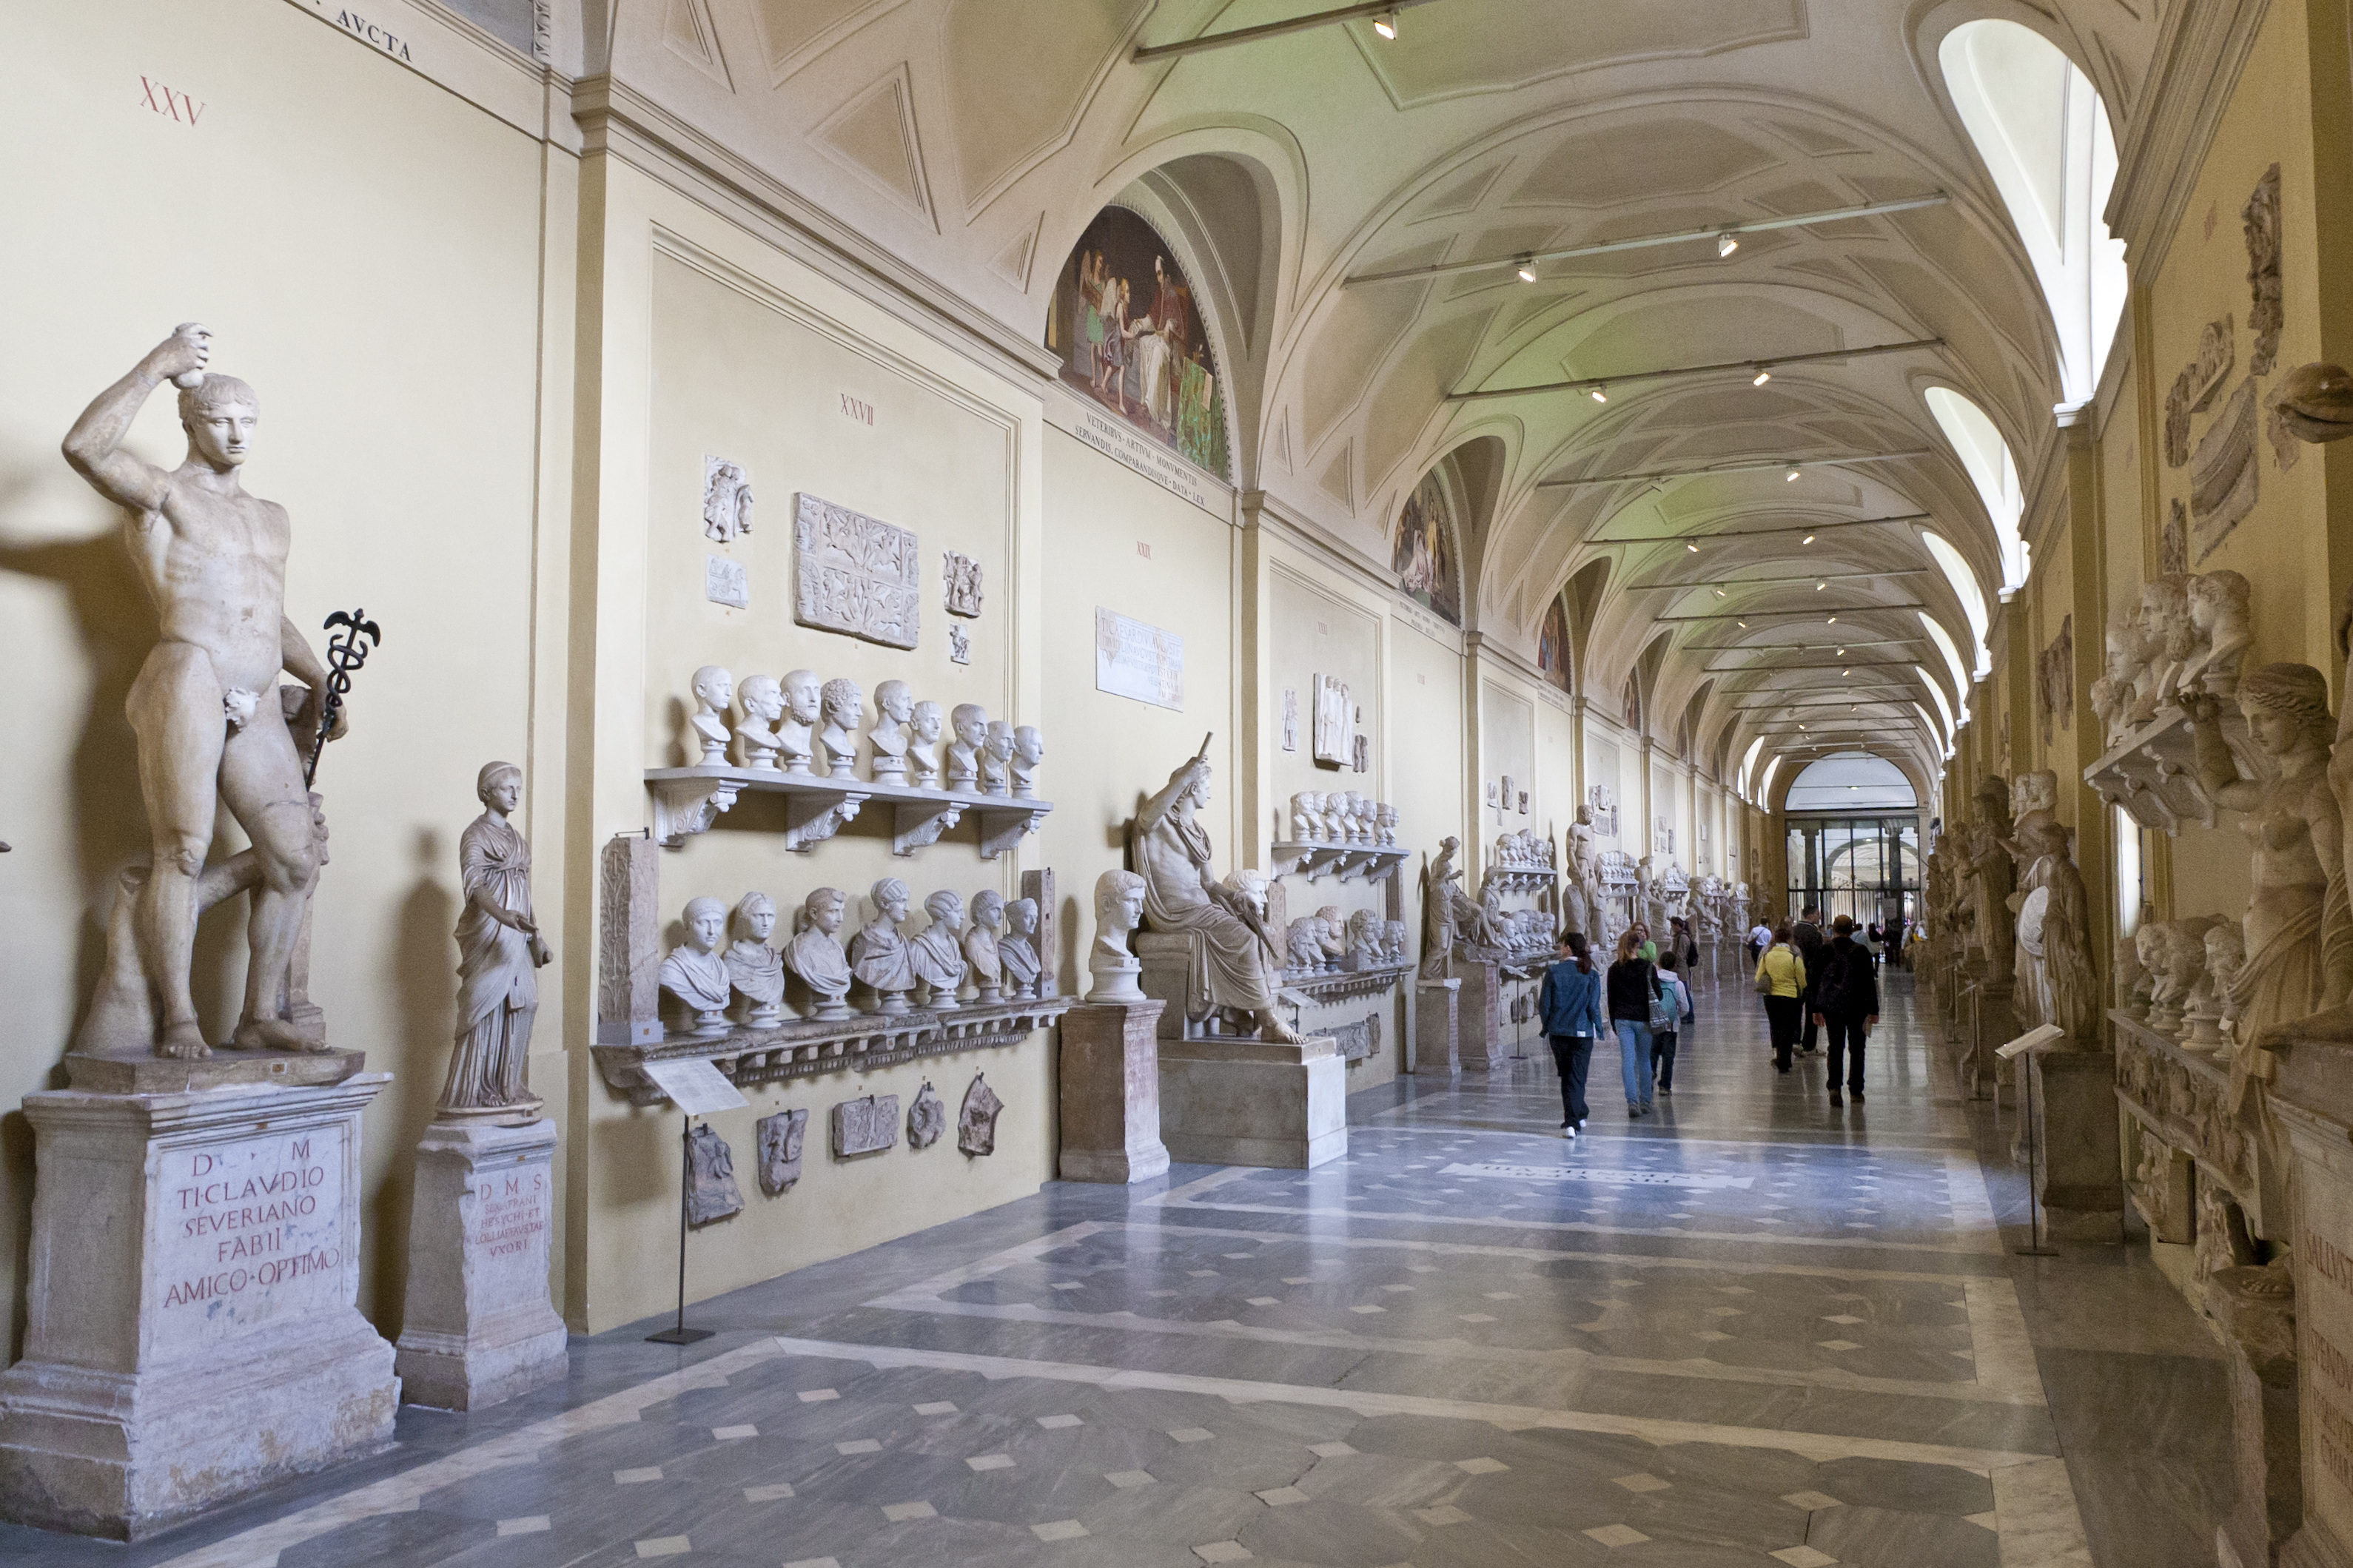 Gallery at the Vatican Museum in the Vatican City, Rome, Italy